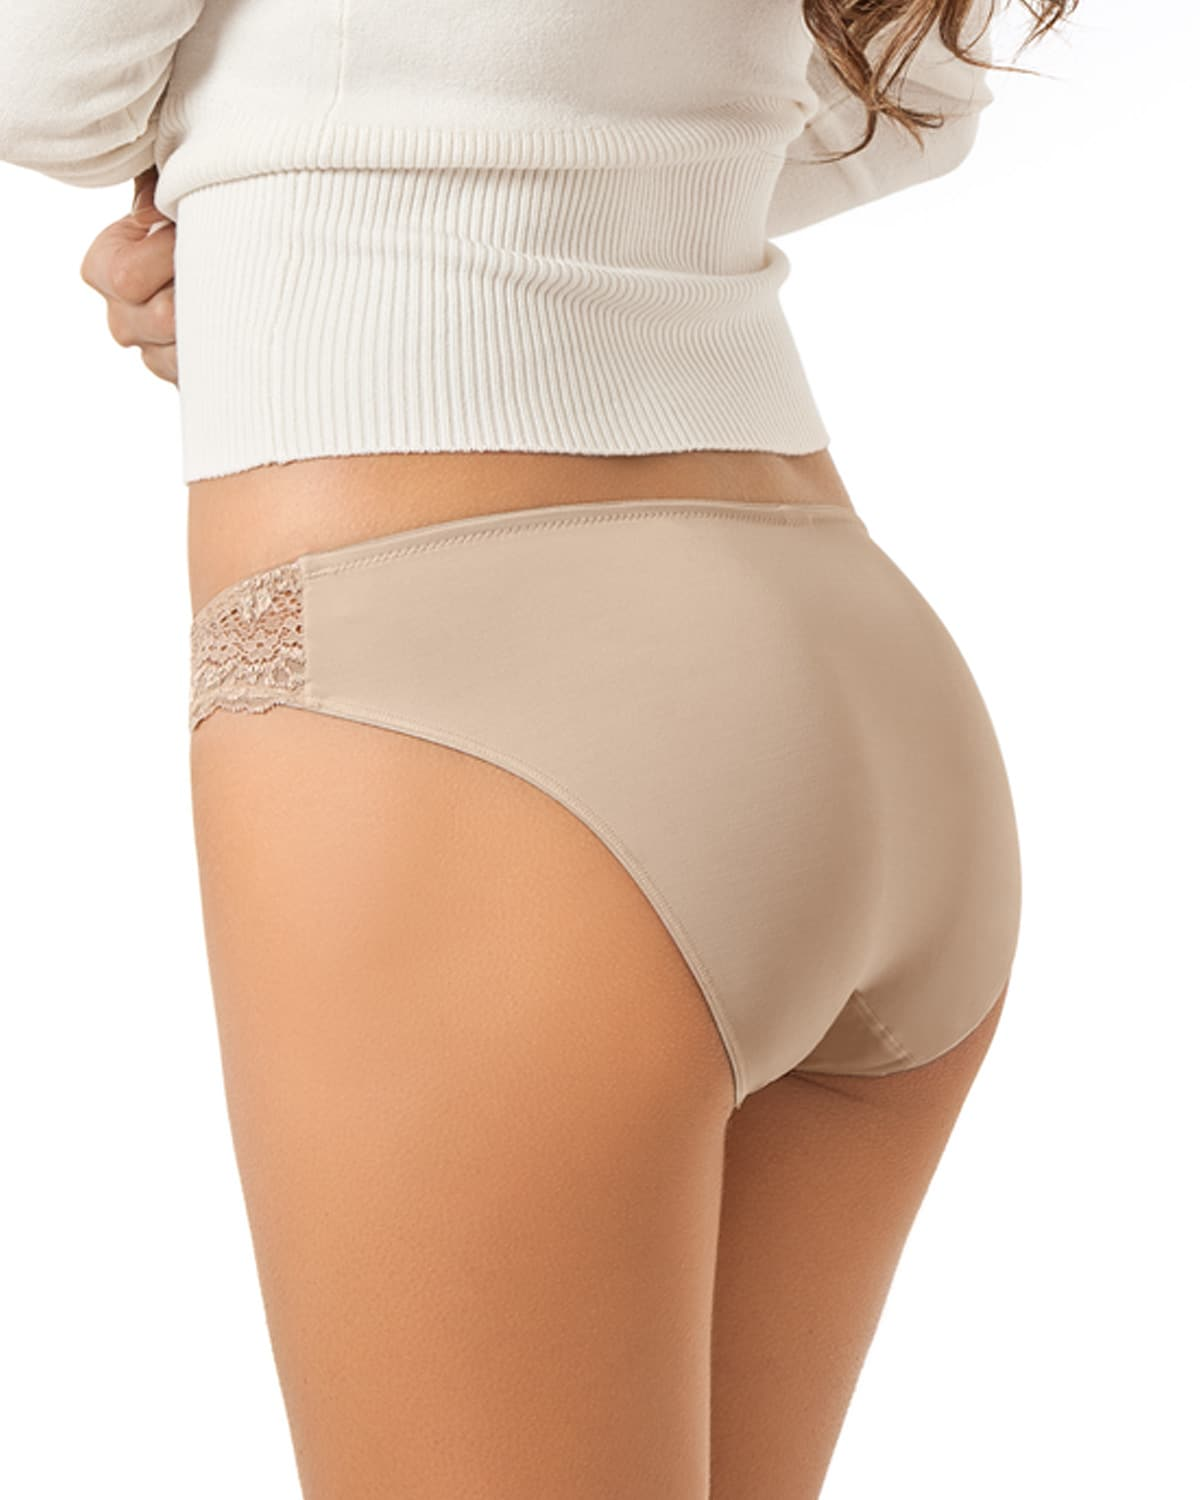 Mid-Rise Lace Brief Panty With Seamless Back